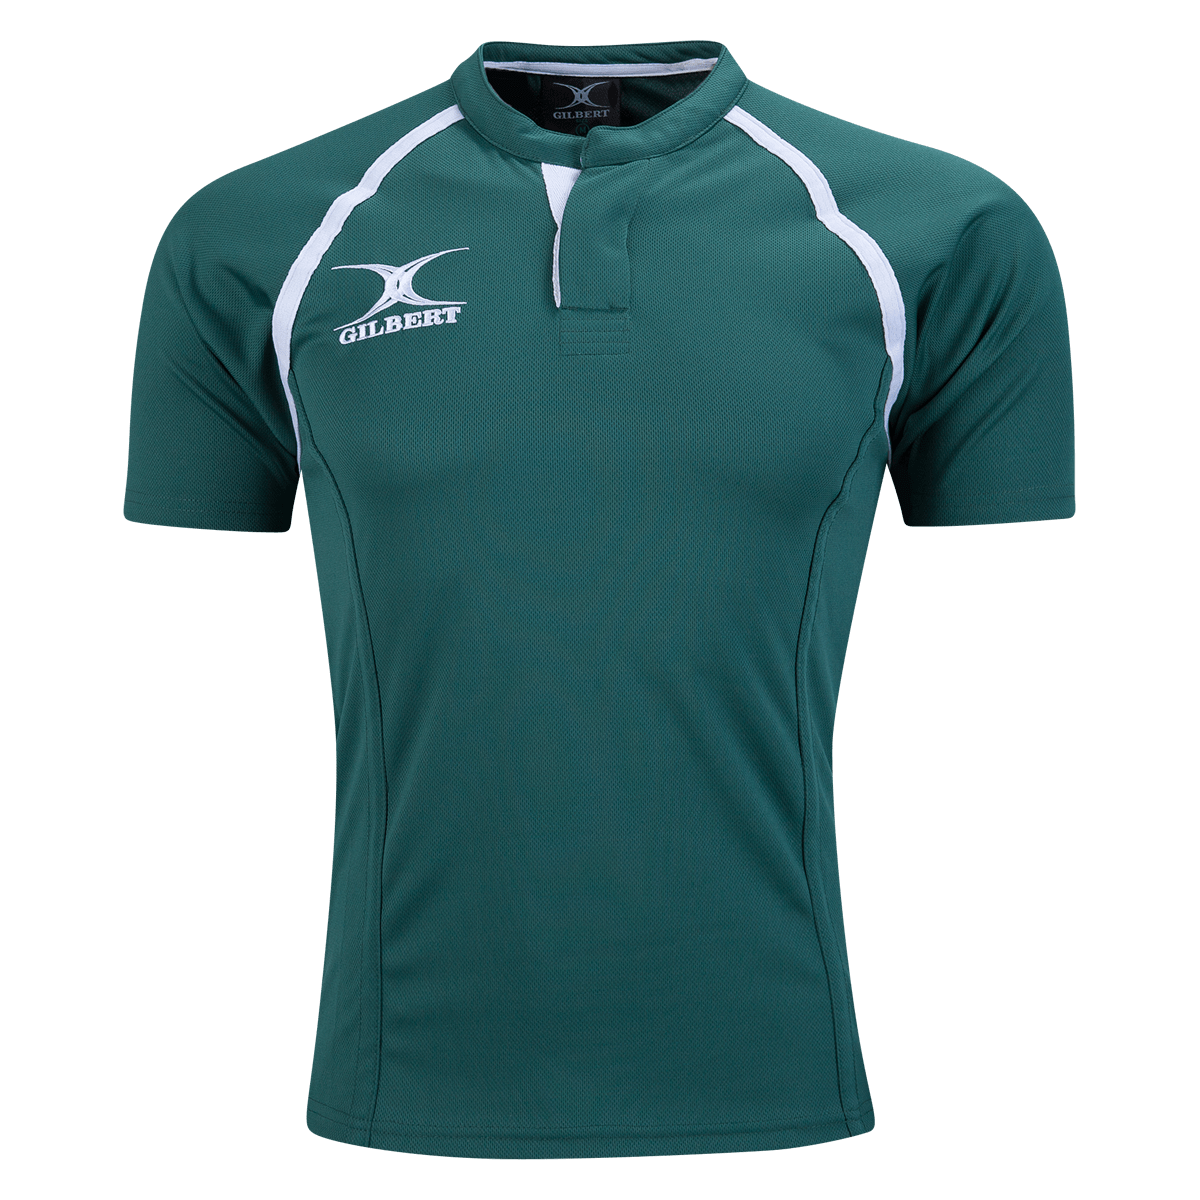 Gilbert Dark Green Xact Premier Rugby Jersey Front With White Logo